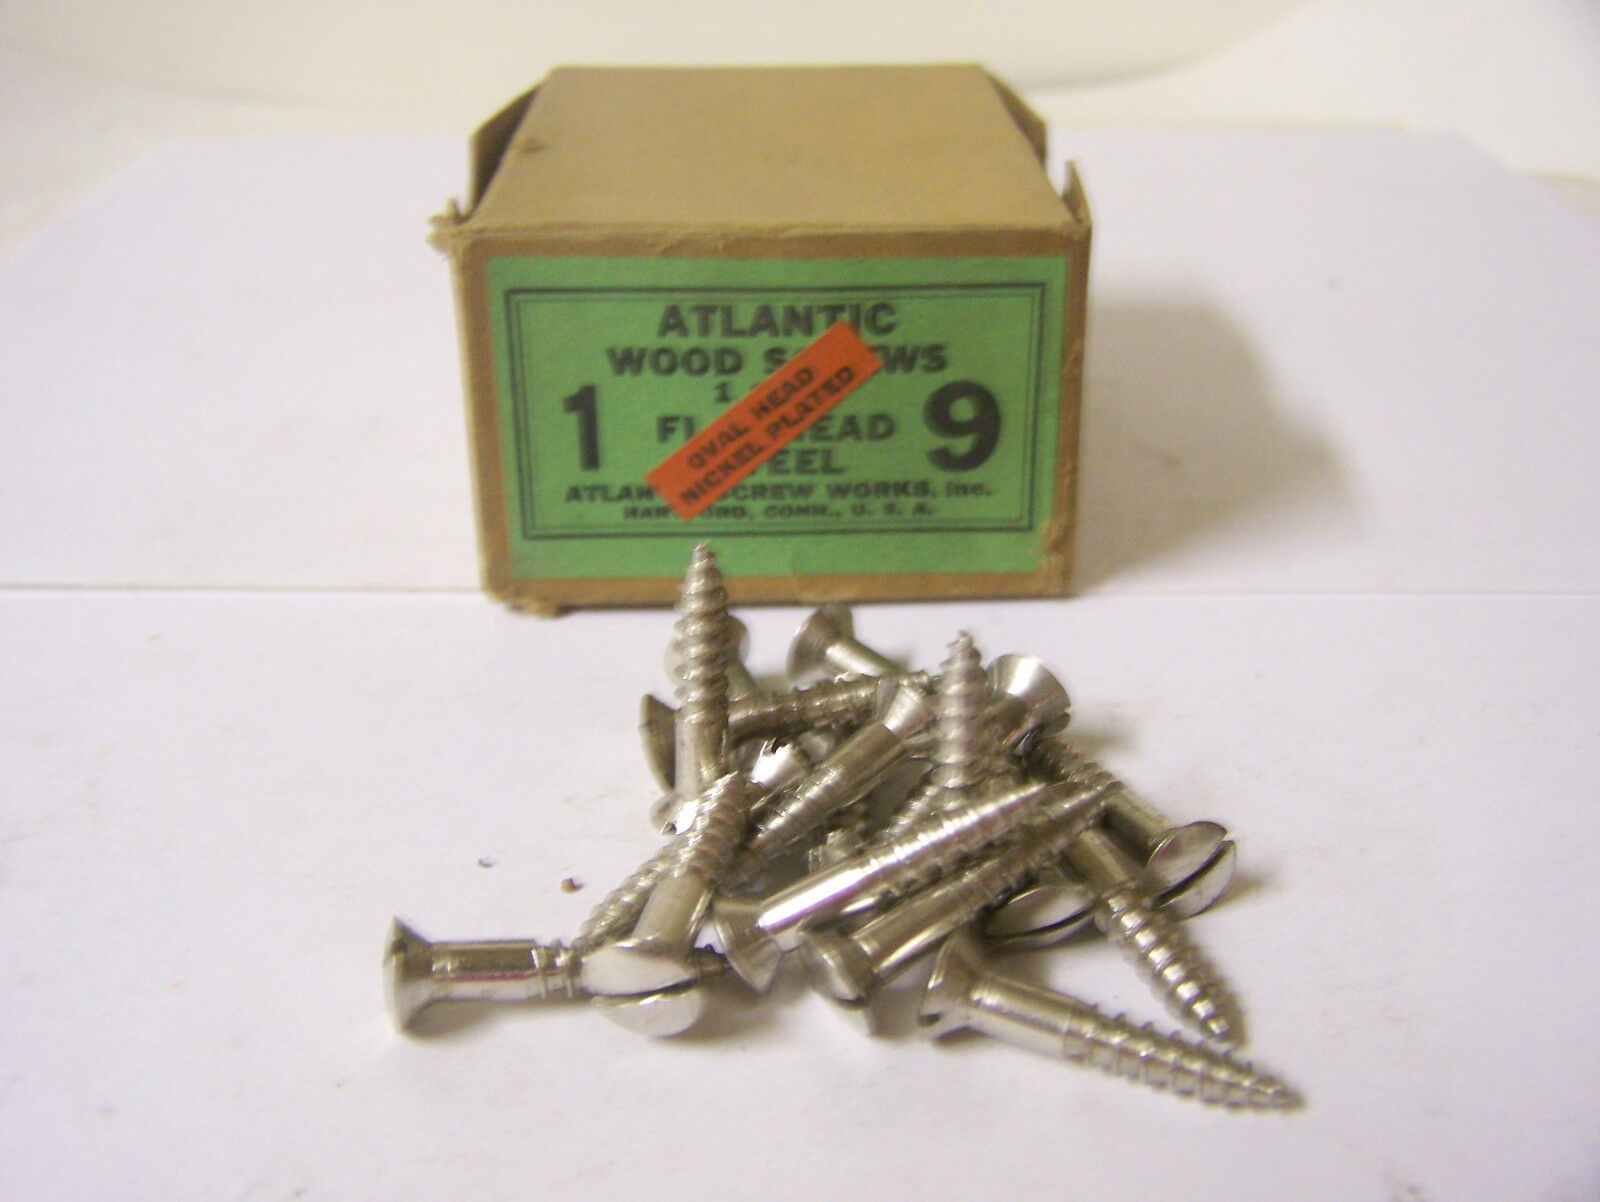 """#9 x 1"""" Oval Head Nickel Plated Steel Screws Slotted Made in USA  Qty. 135"""